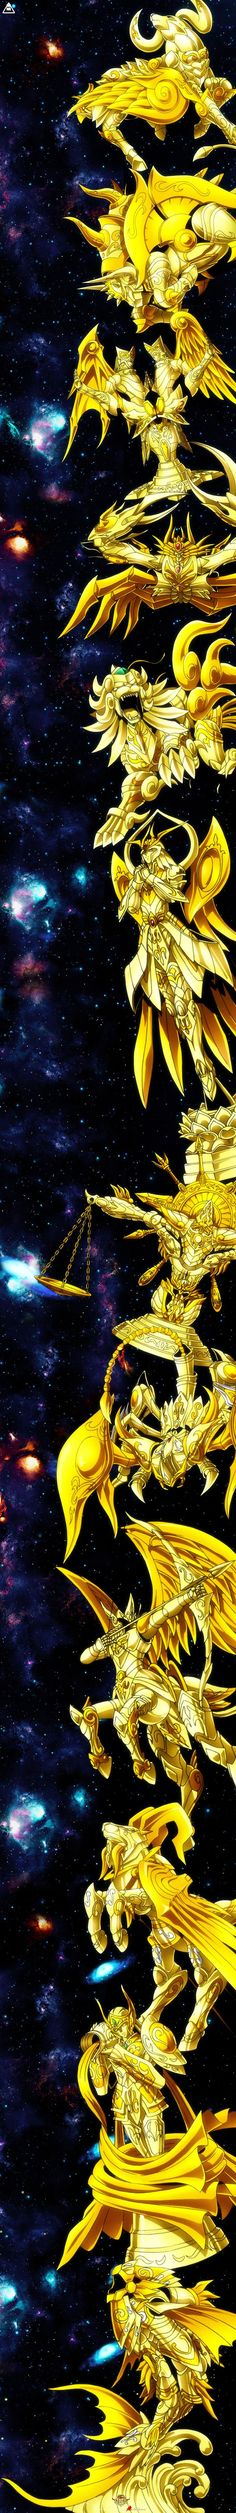 Saint Seiya Soul of Gold's Zodiac of Gold God Cloths Más Manga Anime, Anime Art, Knights Of The Zodiac, 3d Fantasy, Manga Comics, Digimon, Anime Love, Anime Characters, Saints